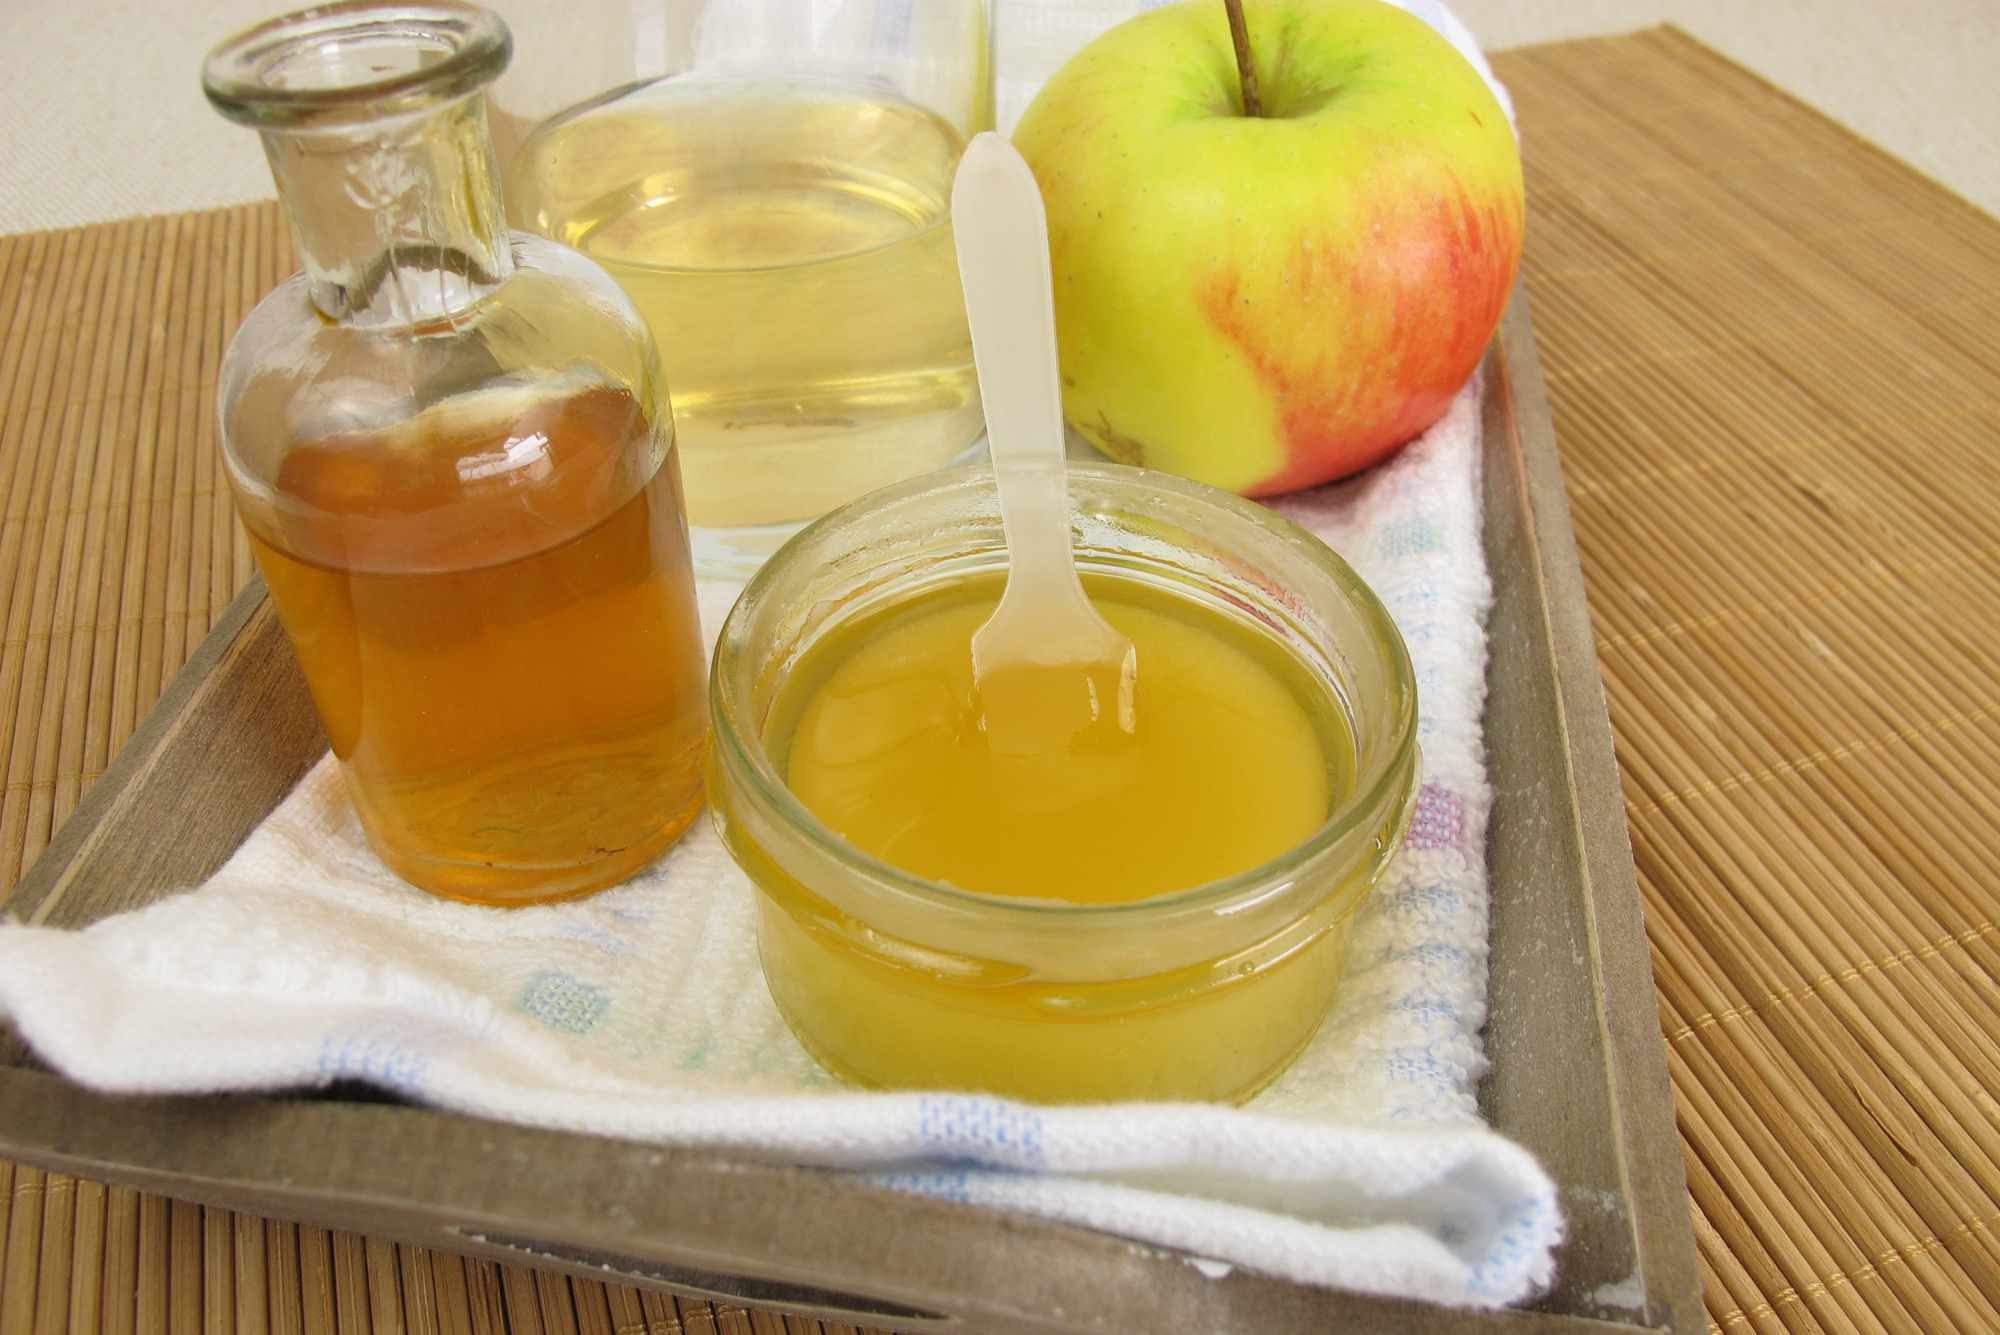 Apples and apple cider vinegar on a tray